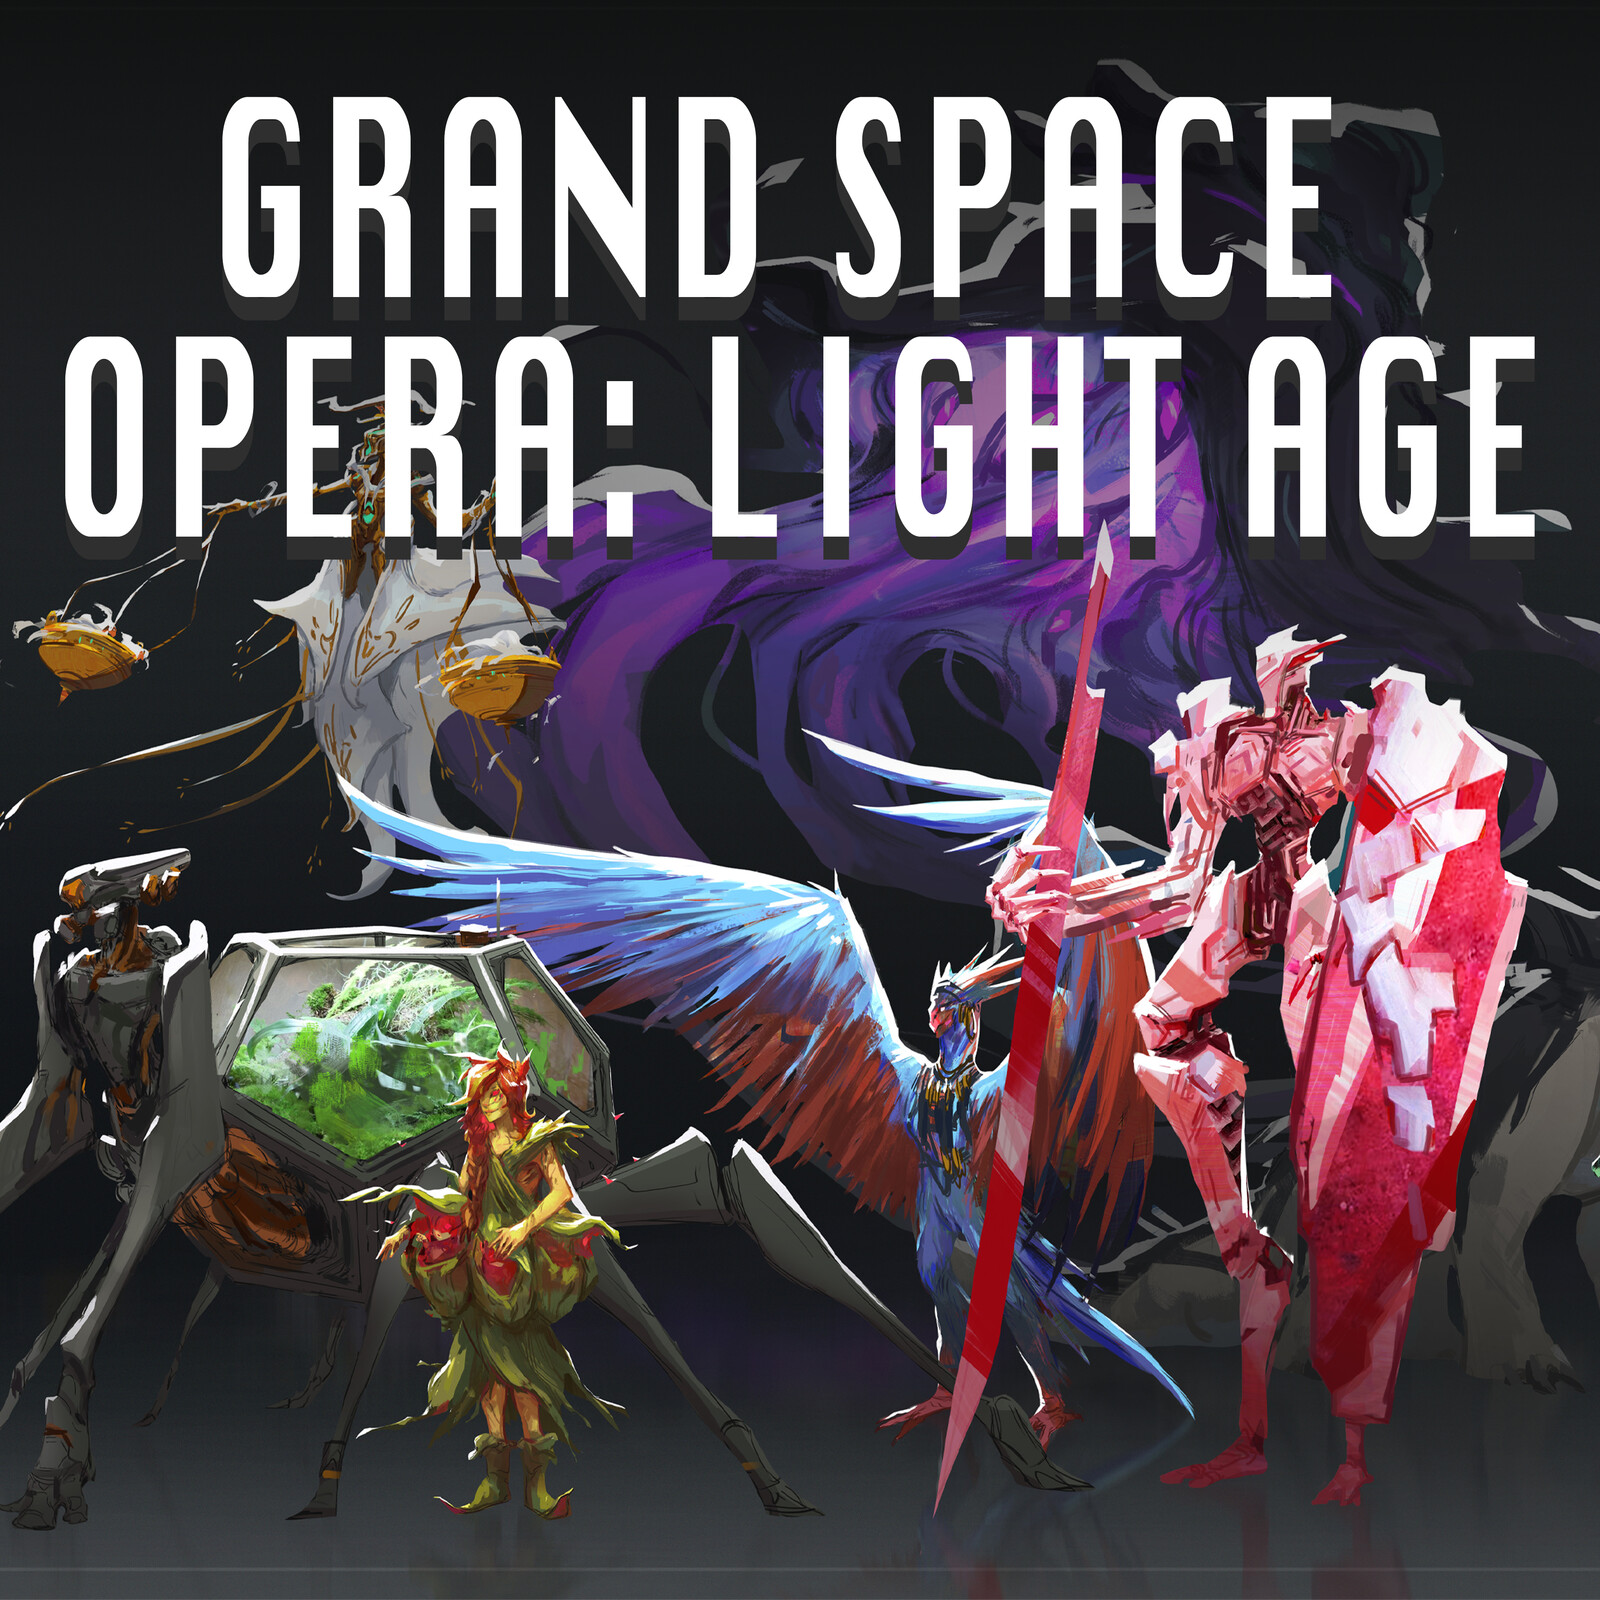 Grand Space Opera: Light Age Character Design